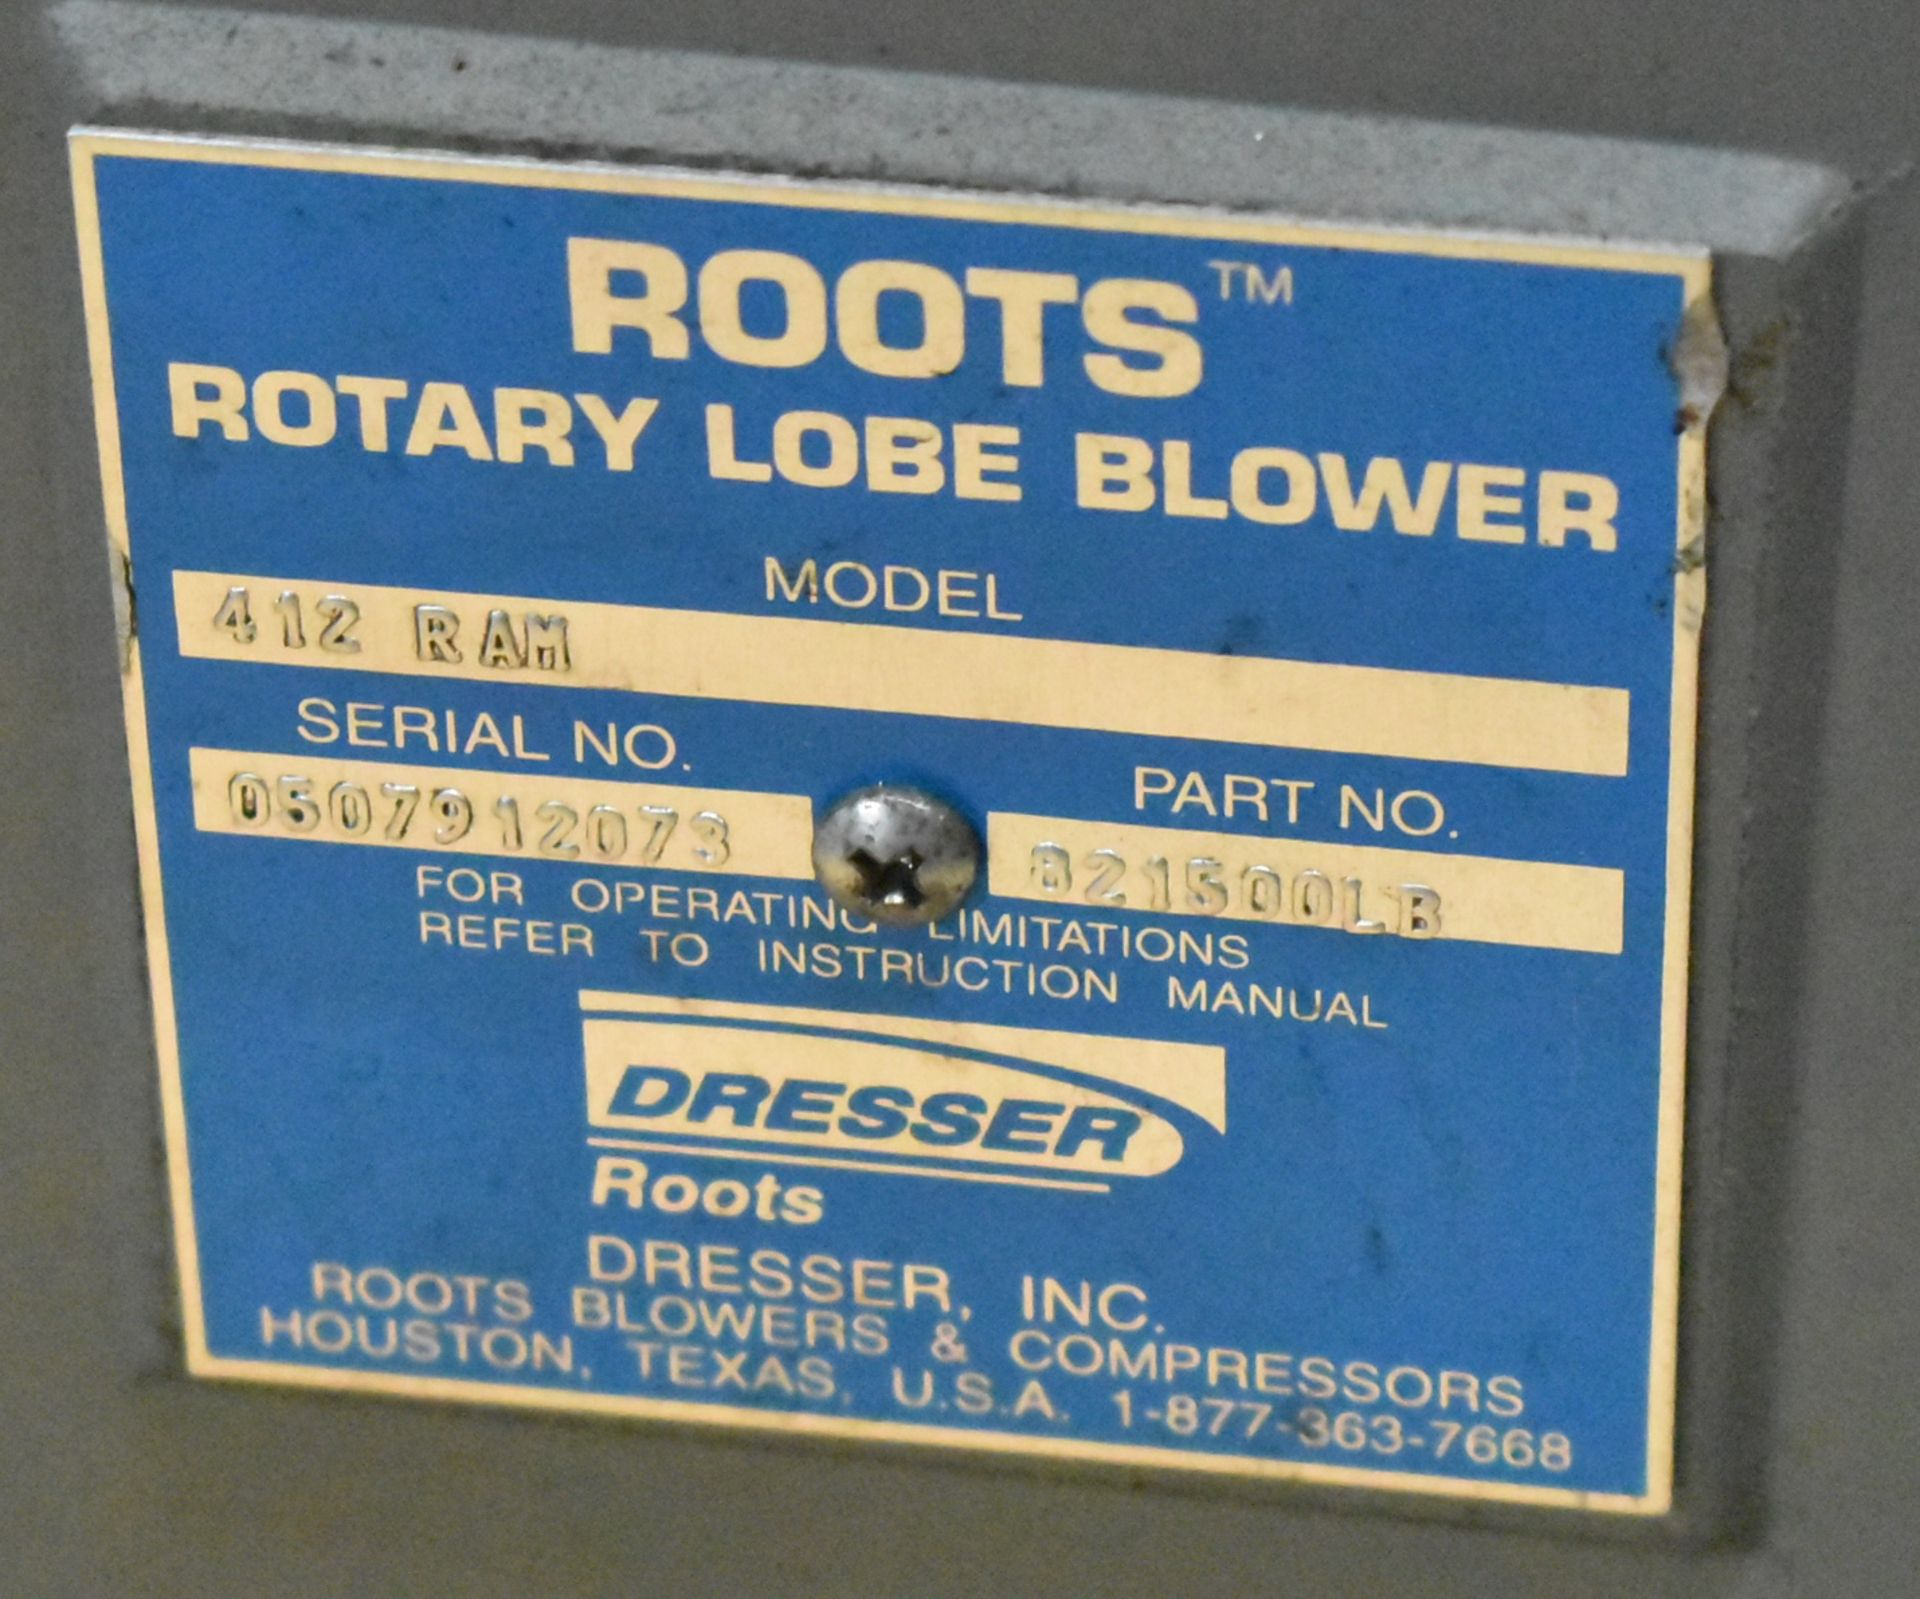 "ROOTS MODEL 412 RAM BLOWER WITH 1.5"" OUTPUT SHAFT, S/N: 0507912073 (CI) [RIGGING FEES FOR LOT # - Image 3 of 3"